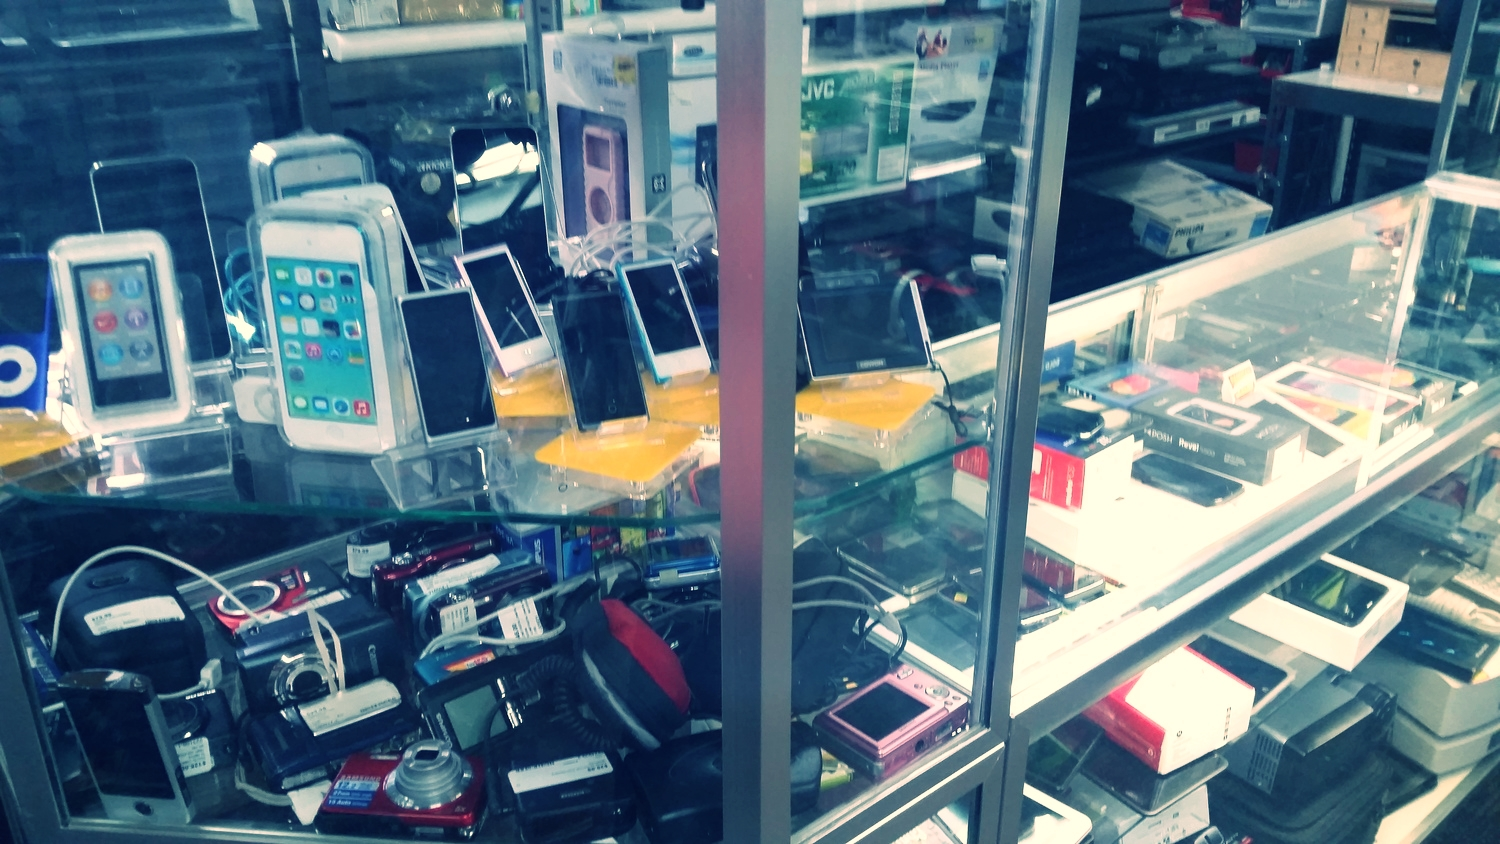 We have new and used Ipod's and digital cameras